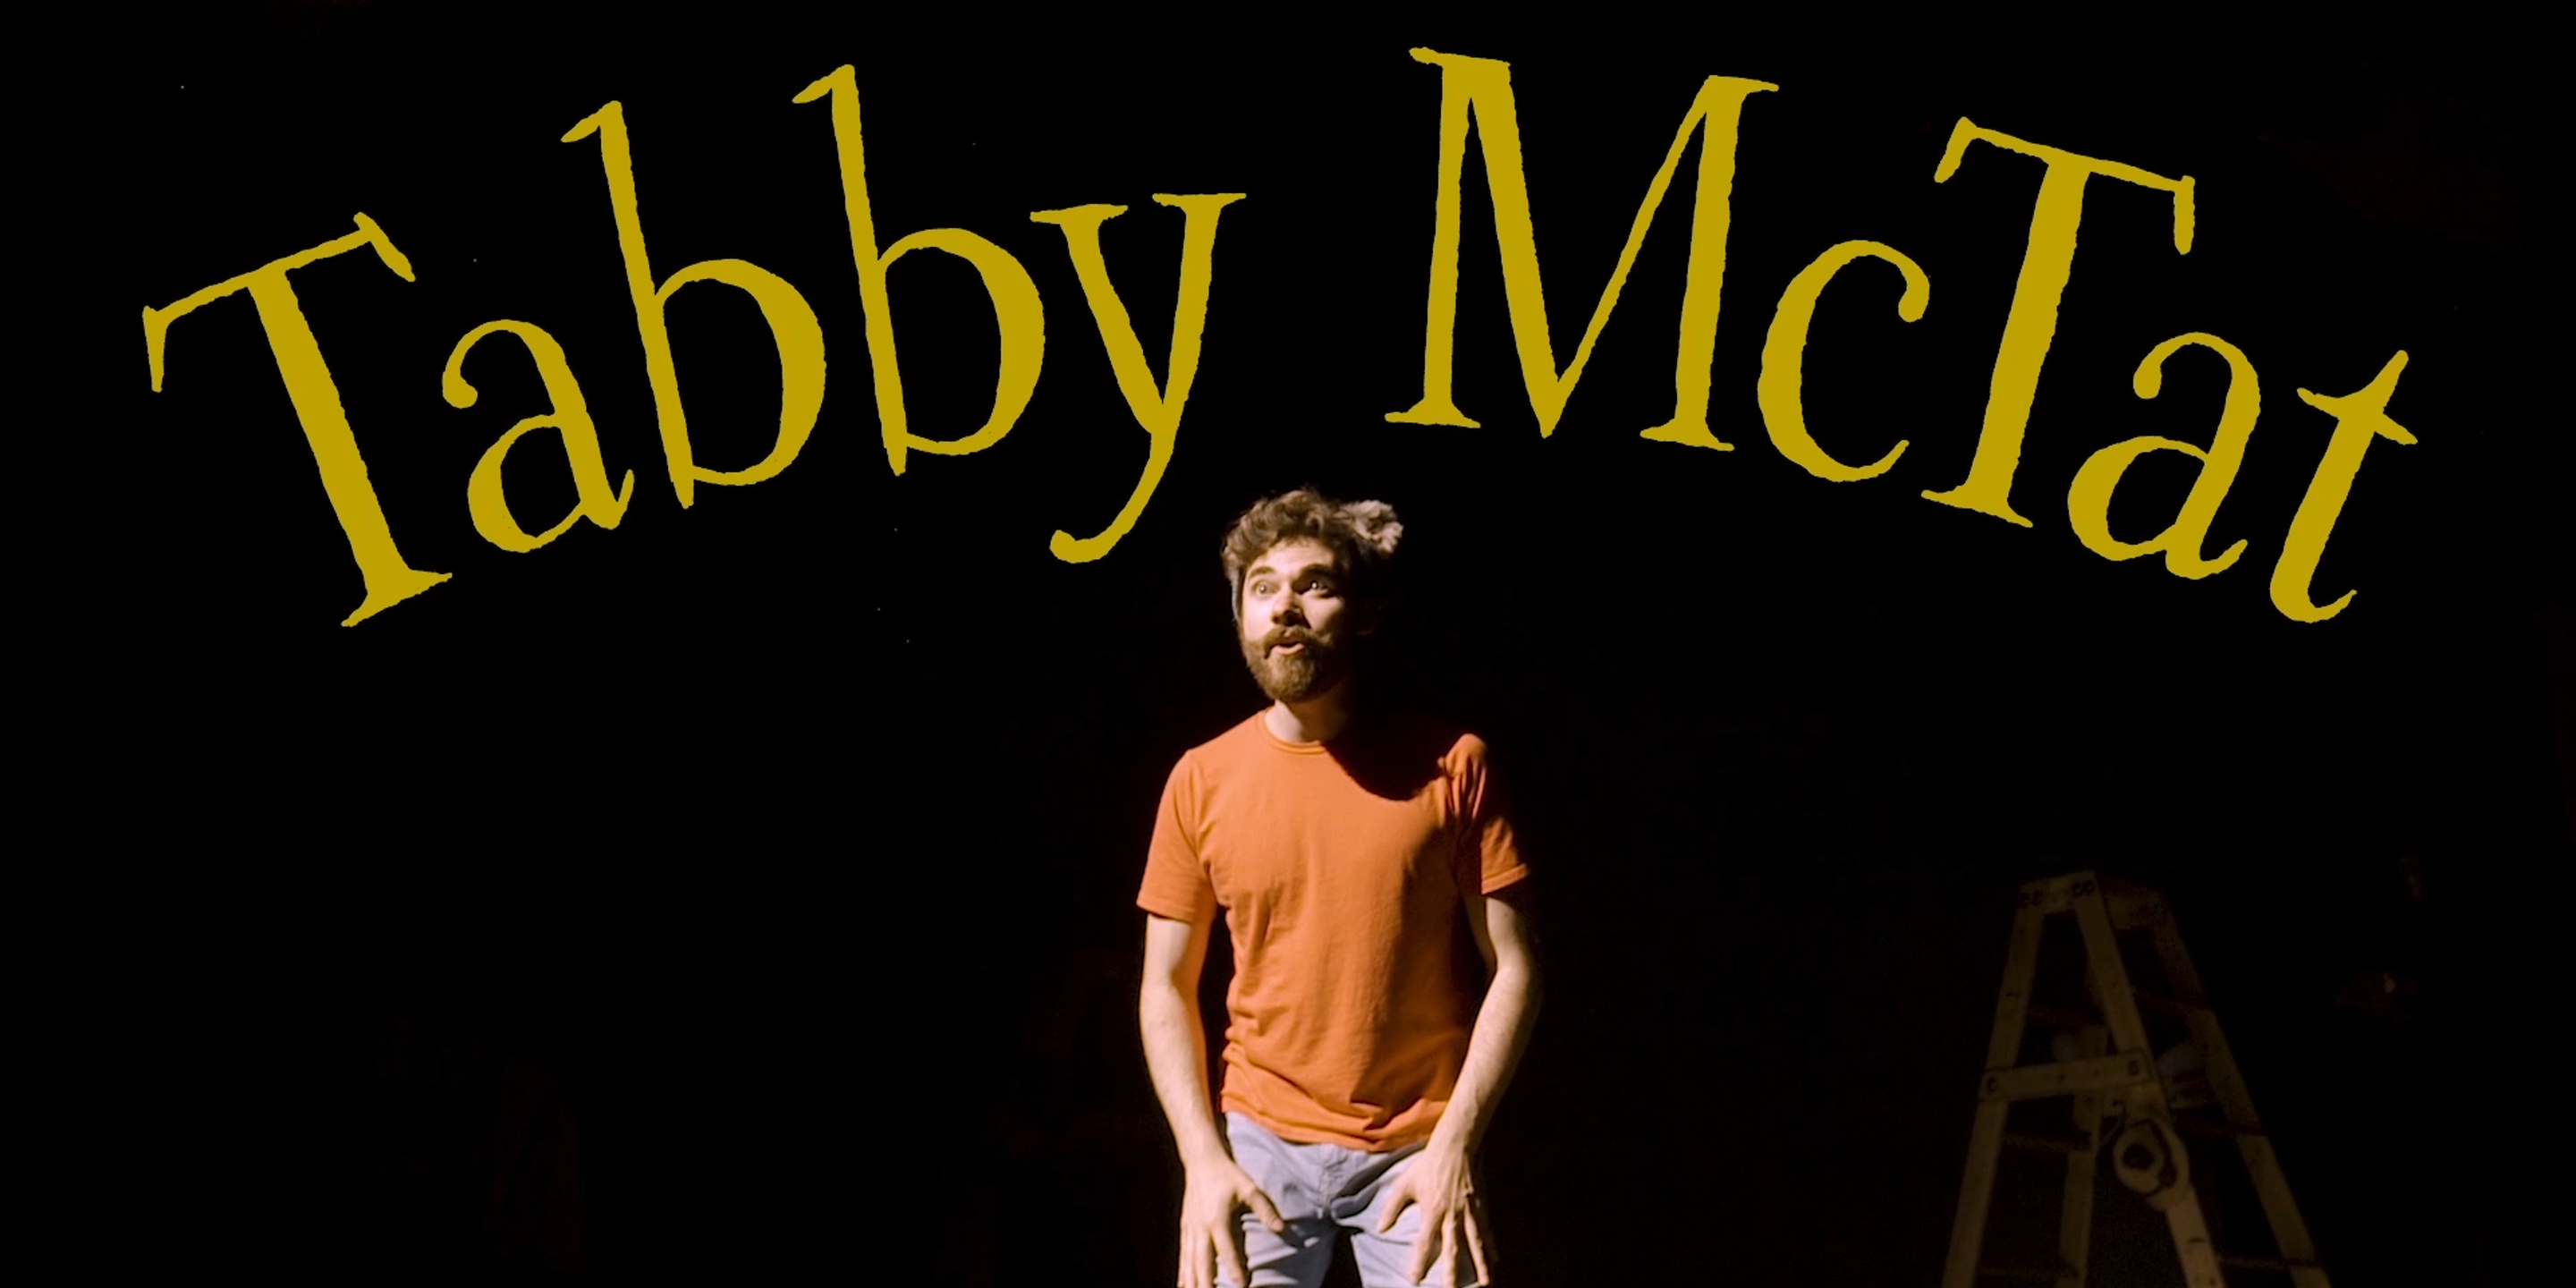 The making of the Tabby McTat trailer...